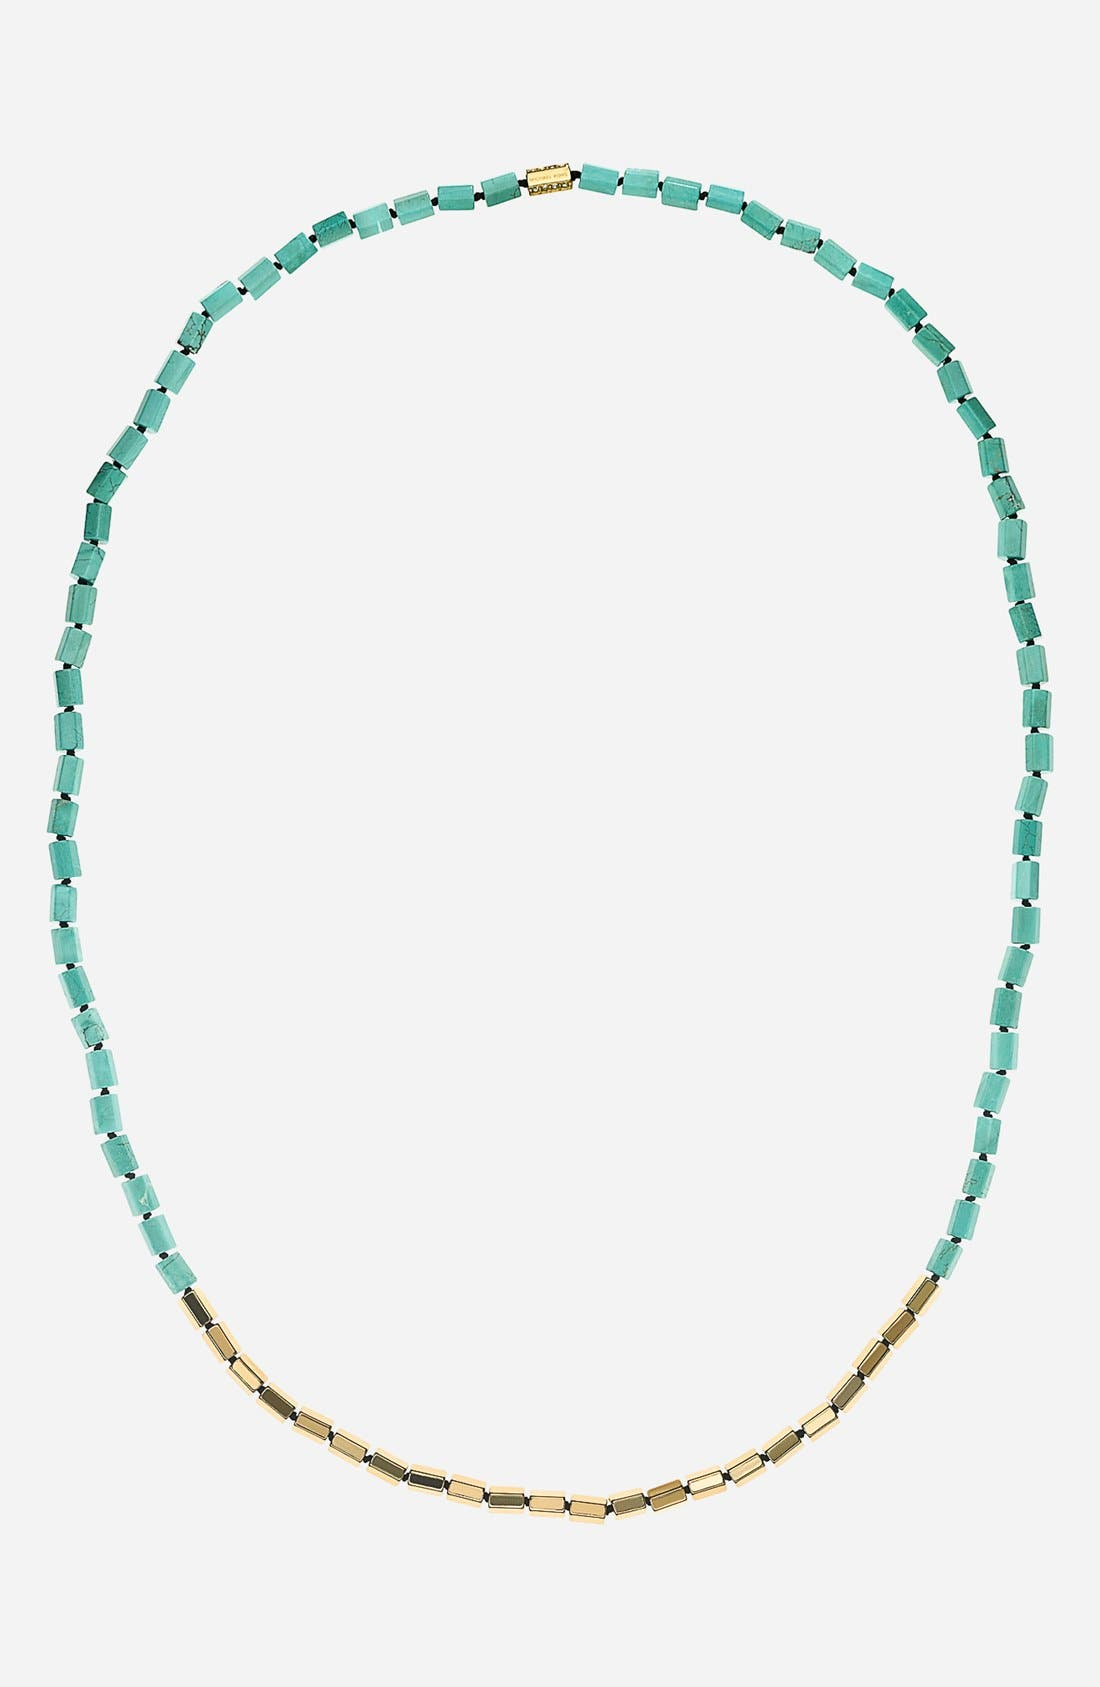 Main Image - Michael Kors 'Seaside Luxe' Long Stone Beaded Necklace